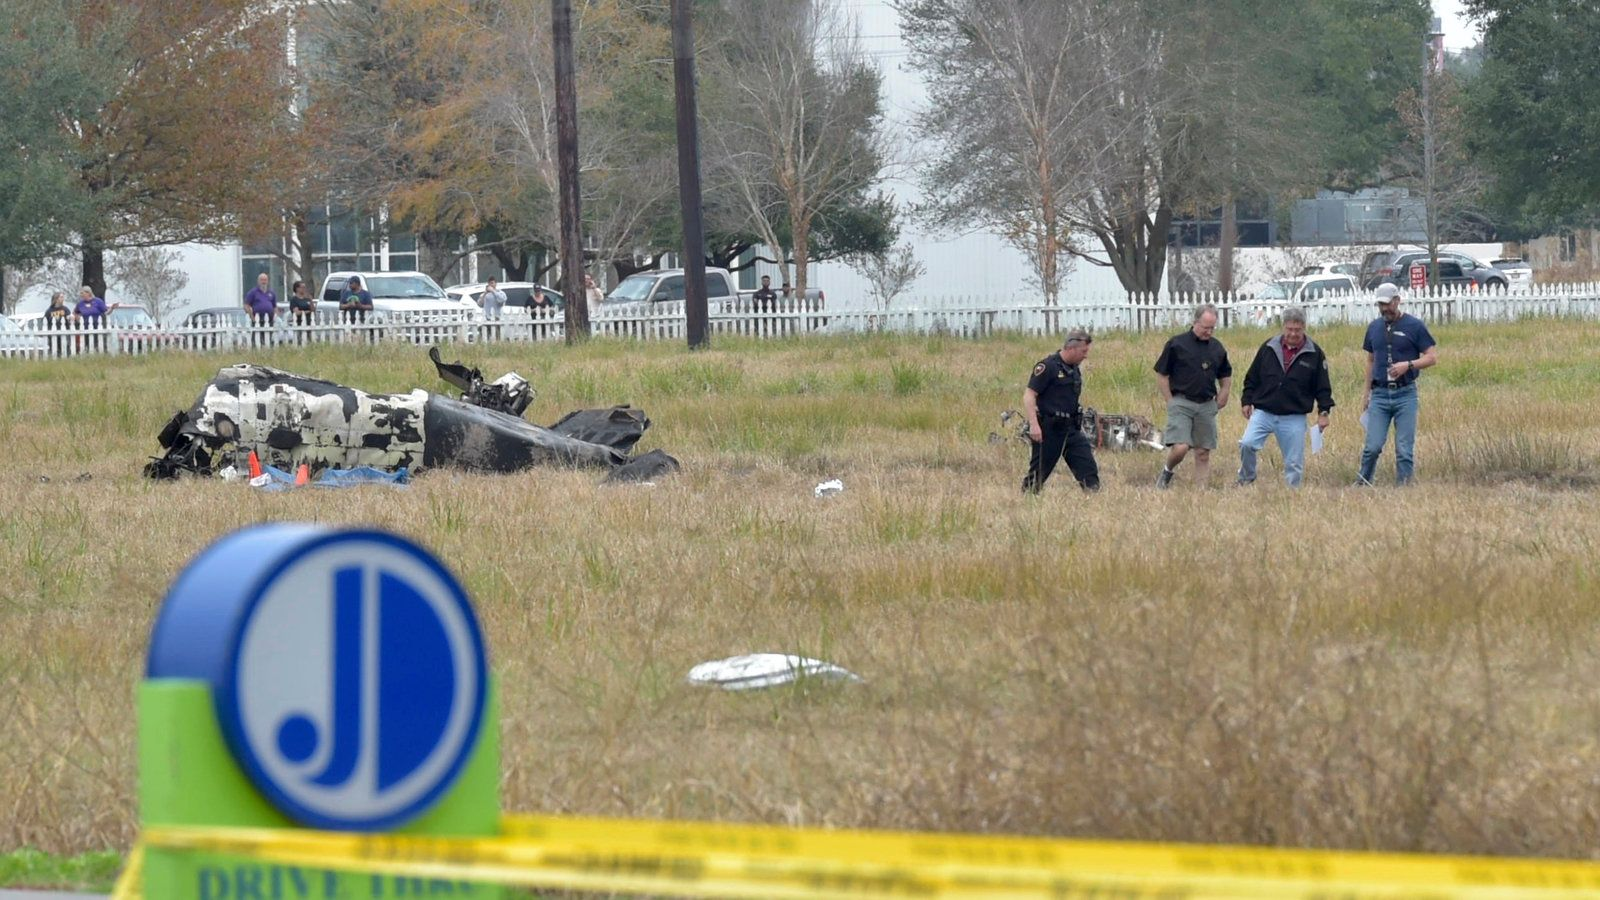 Type Of Aircraft That Crashed In Lafayette in 2020